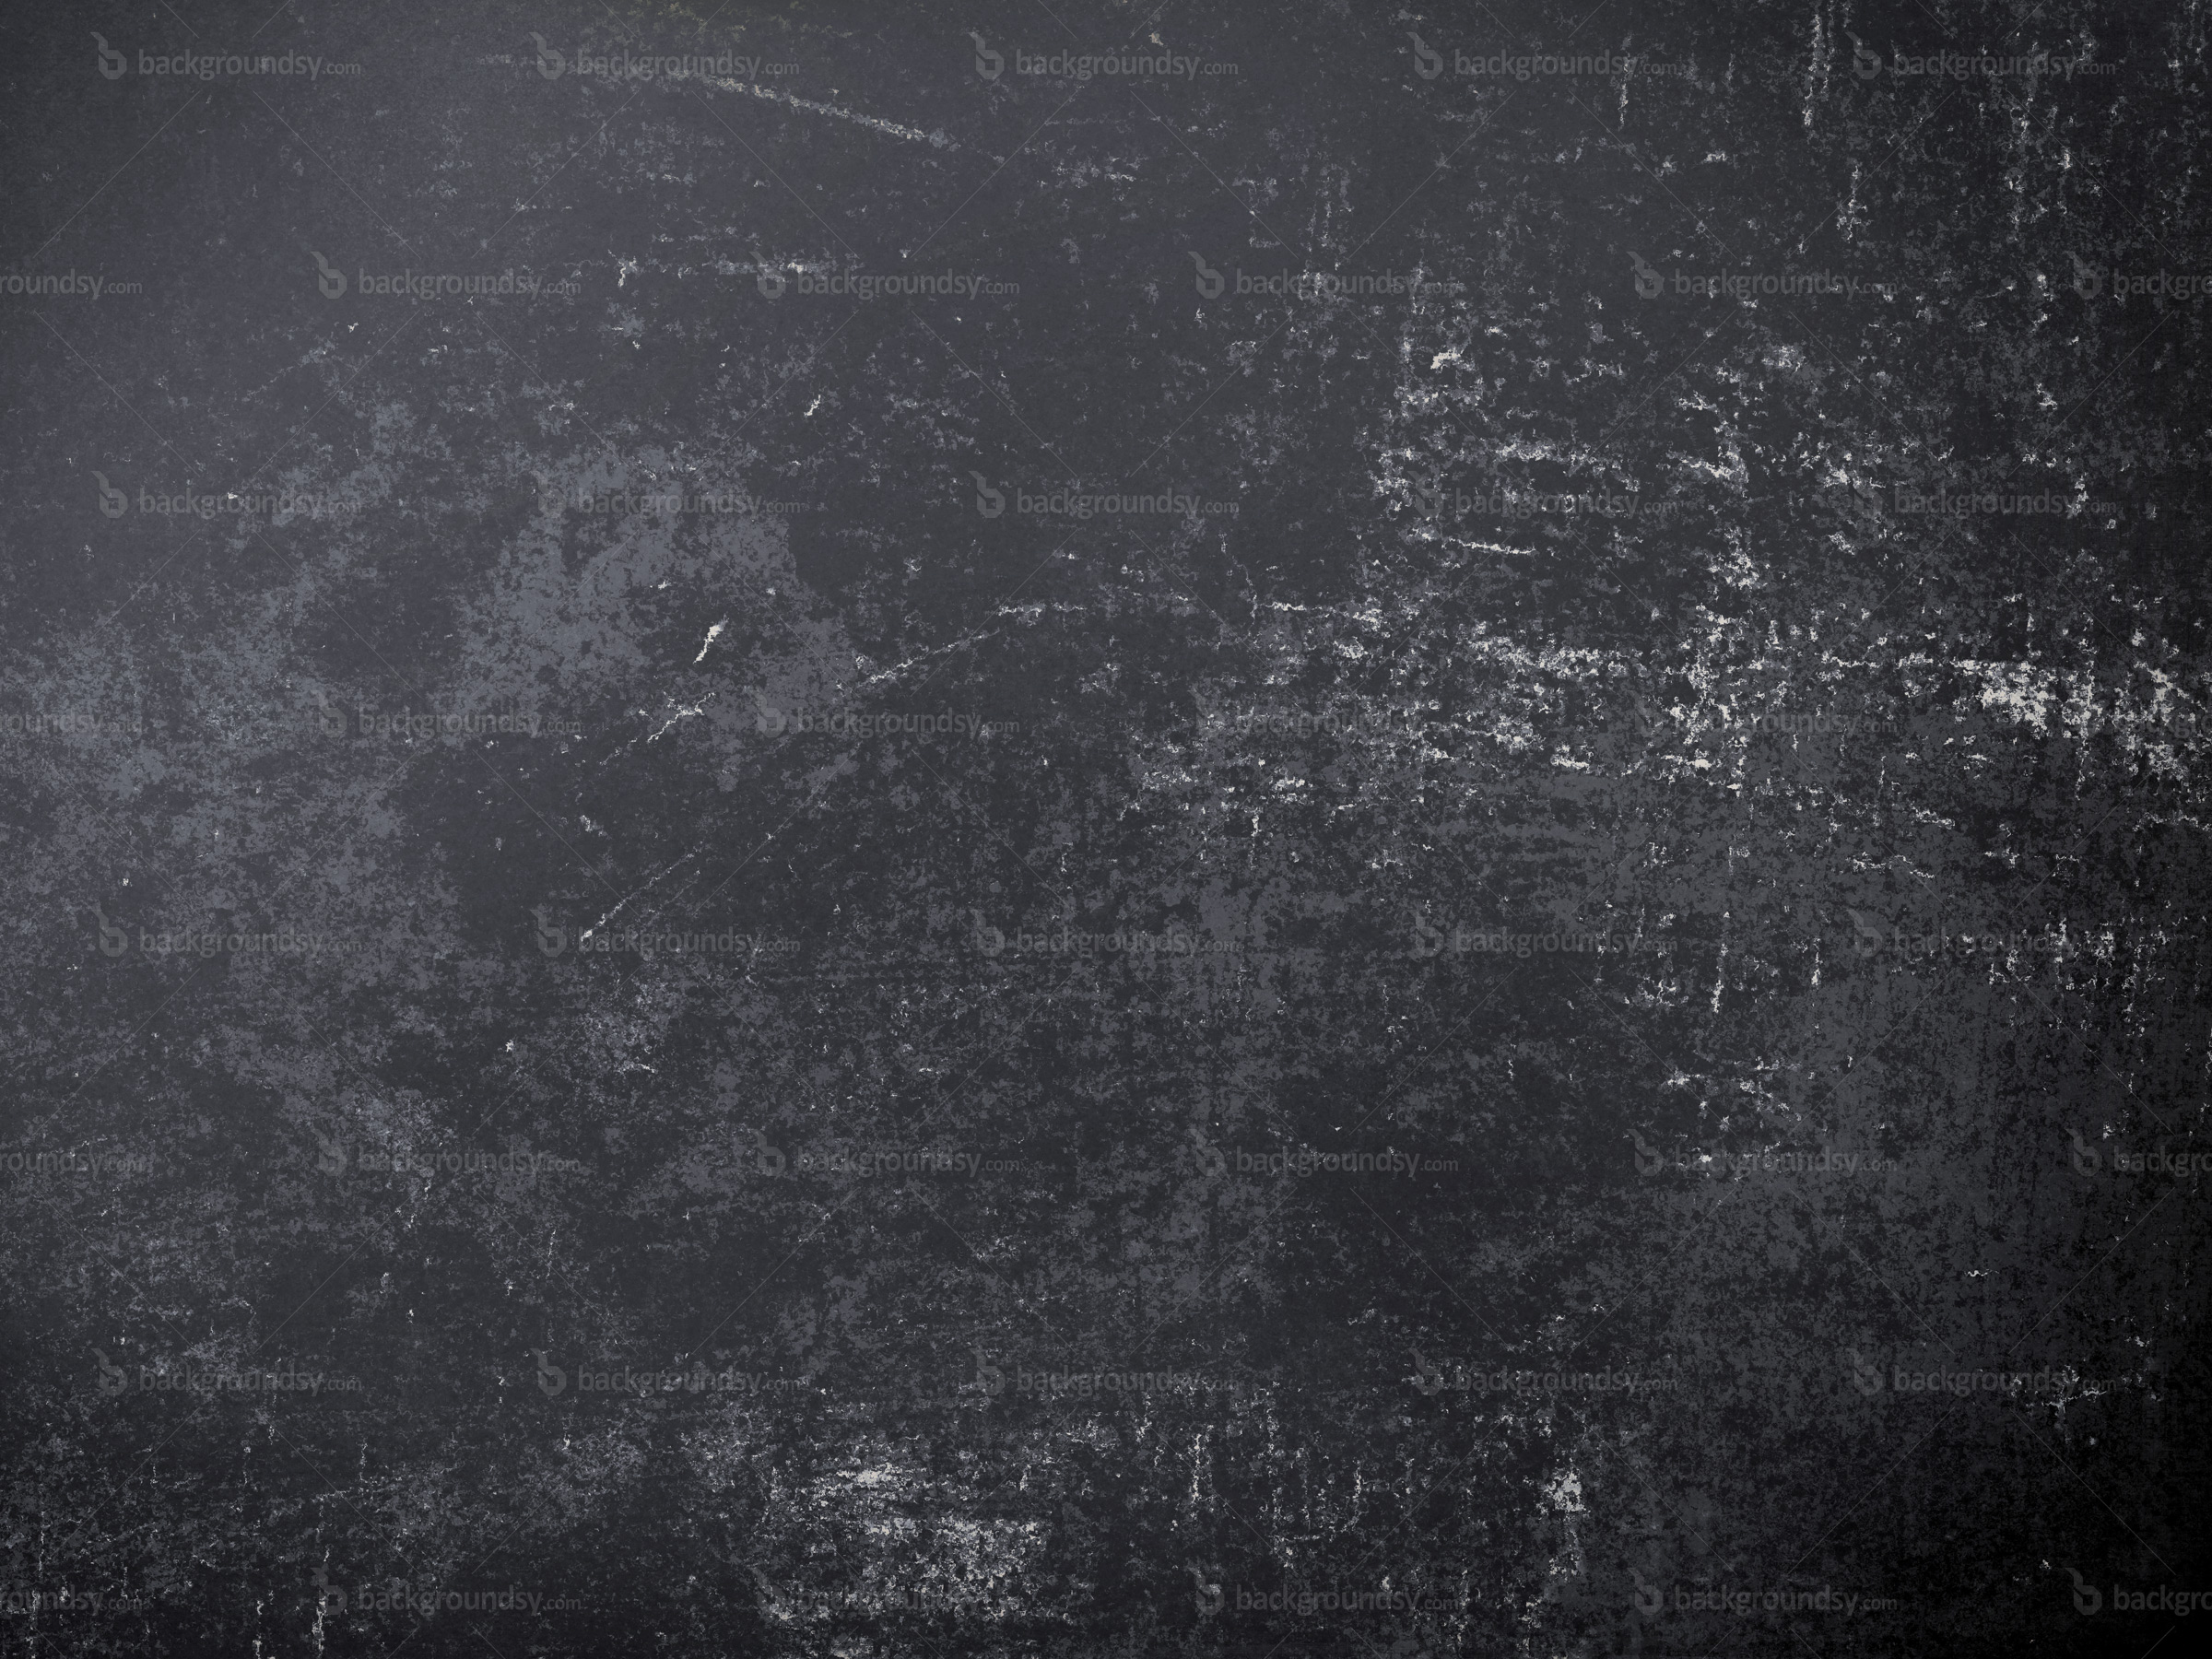 Dark grunge wall Backgroundsy 2400x1800